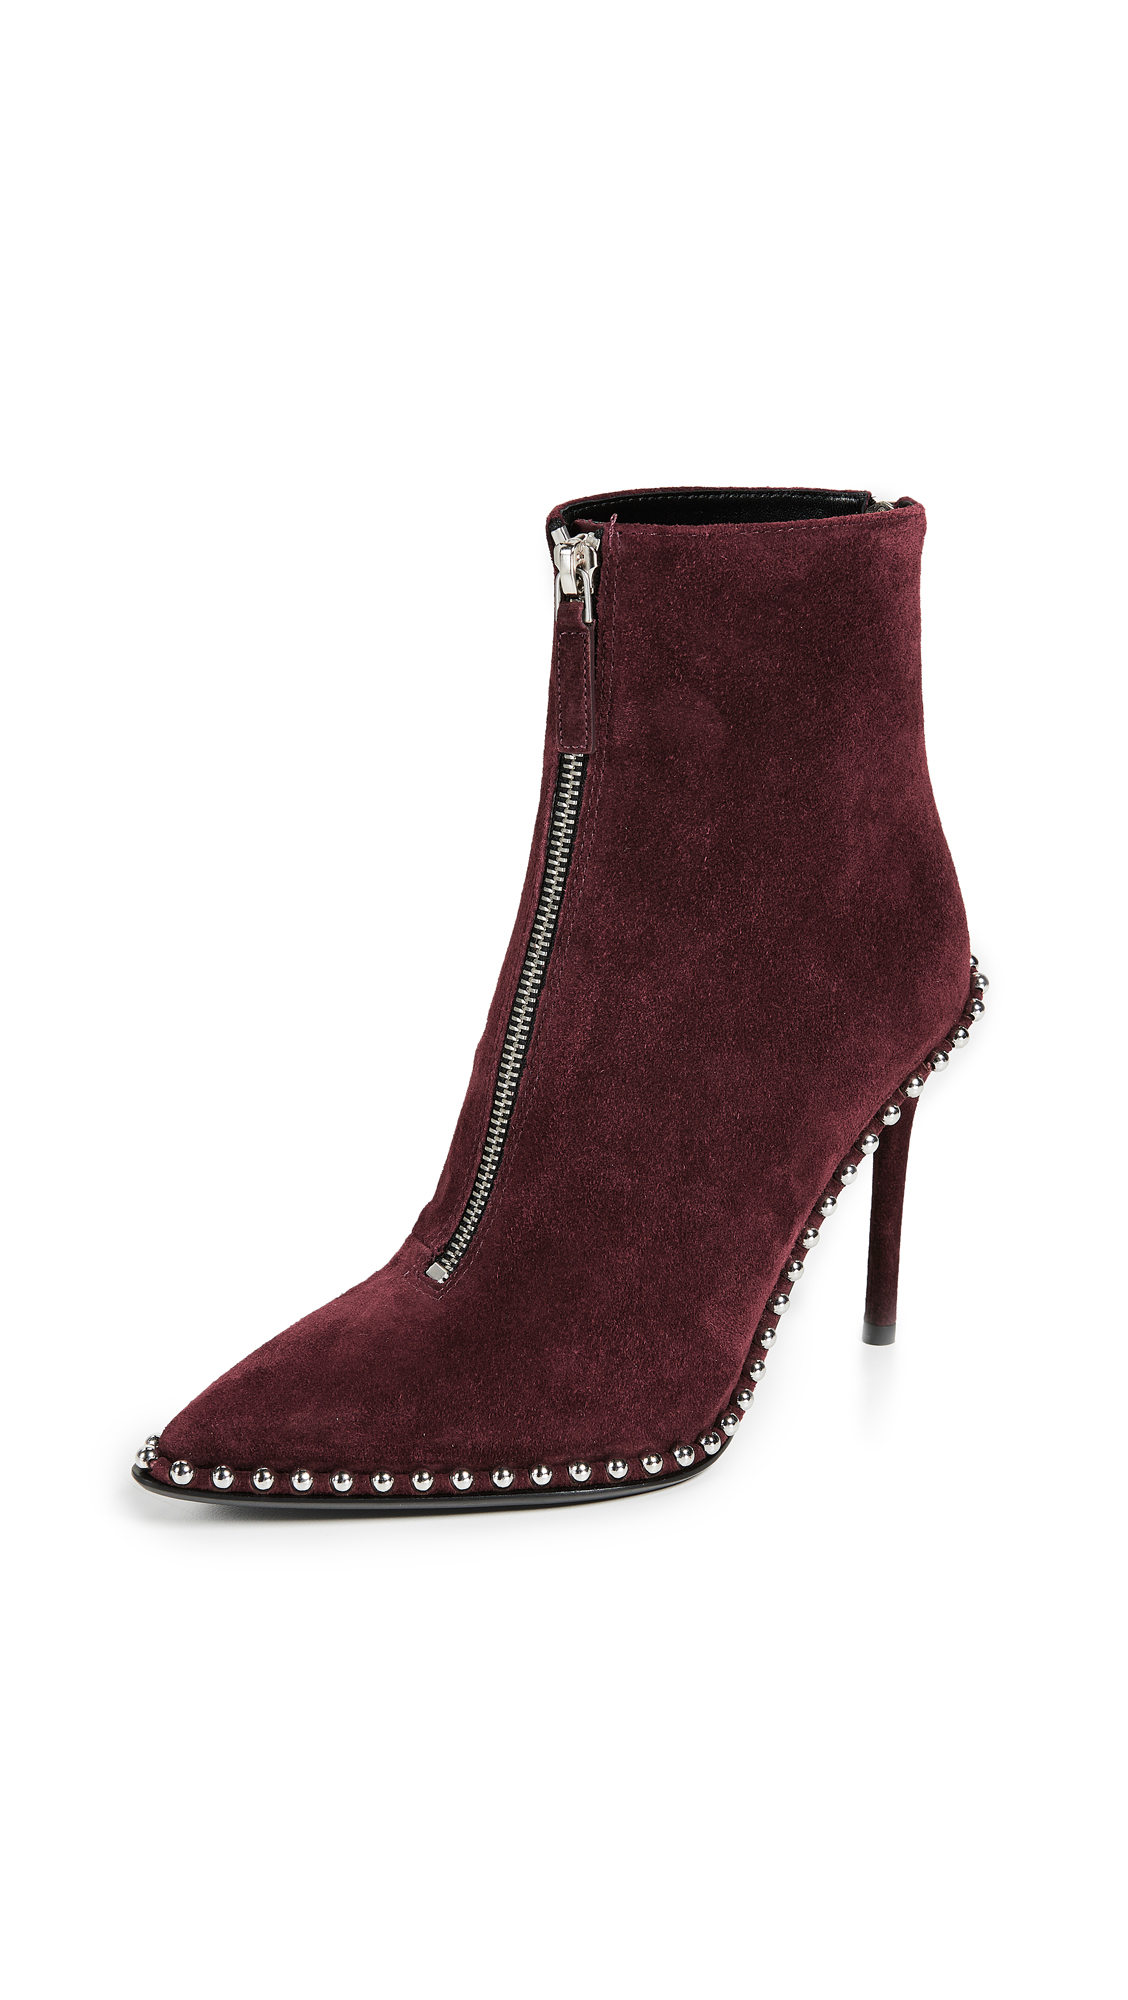 Alexander Wang Eri Booties - Cranberry